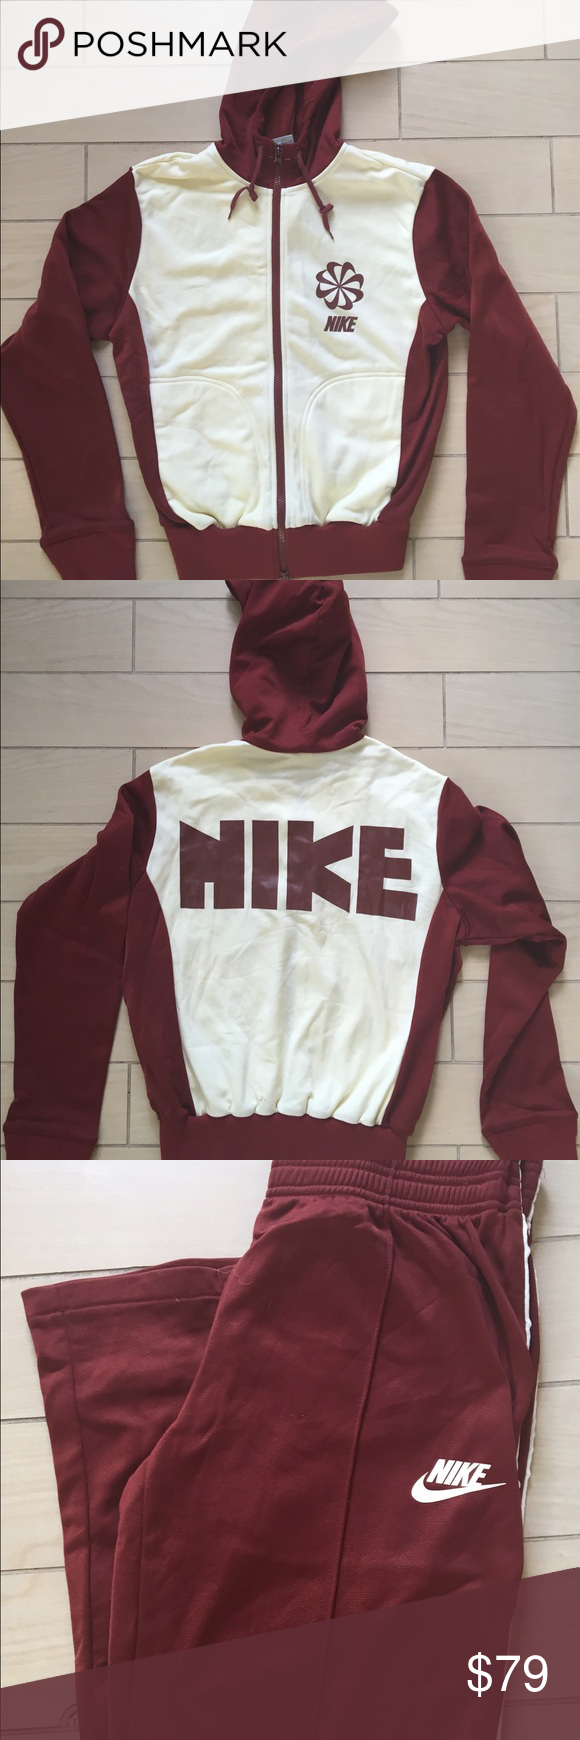 Nike Women s Limited Edition Vintage Tracksuit New